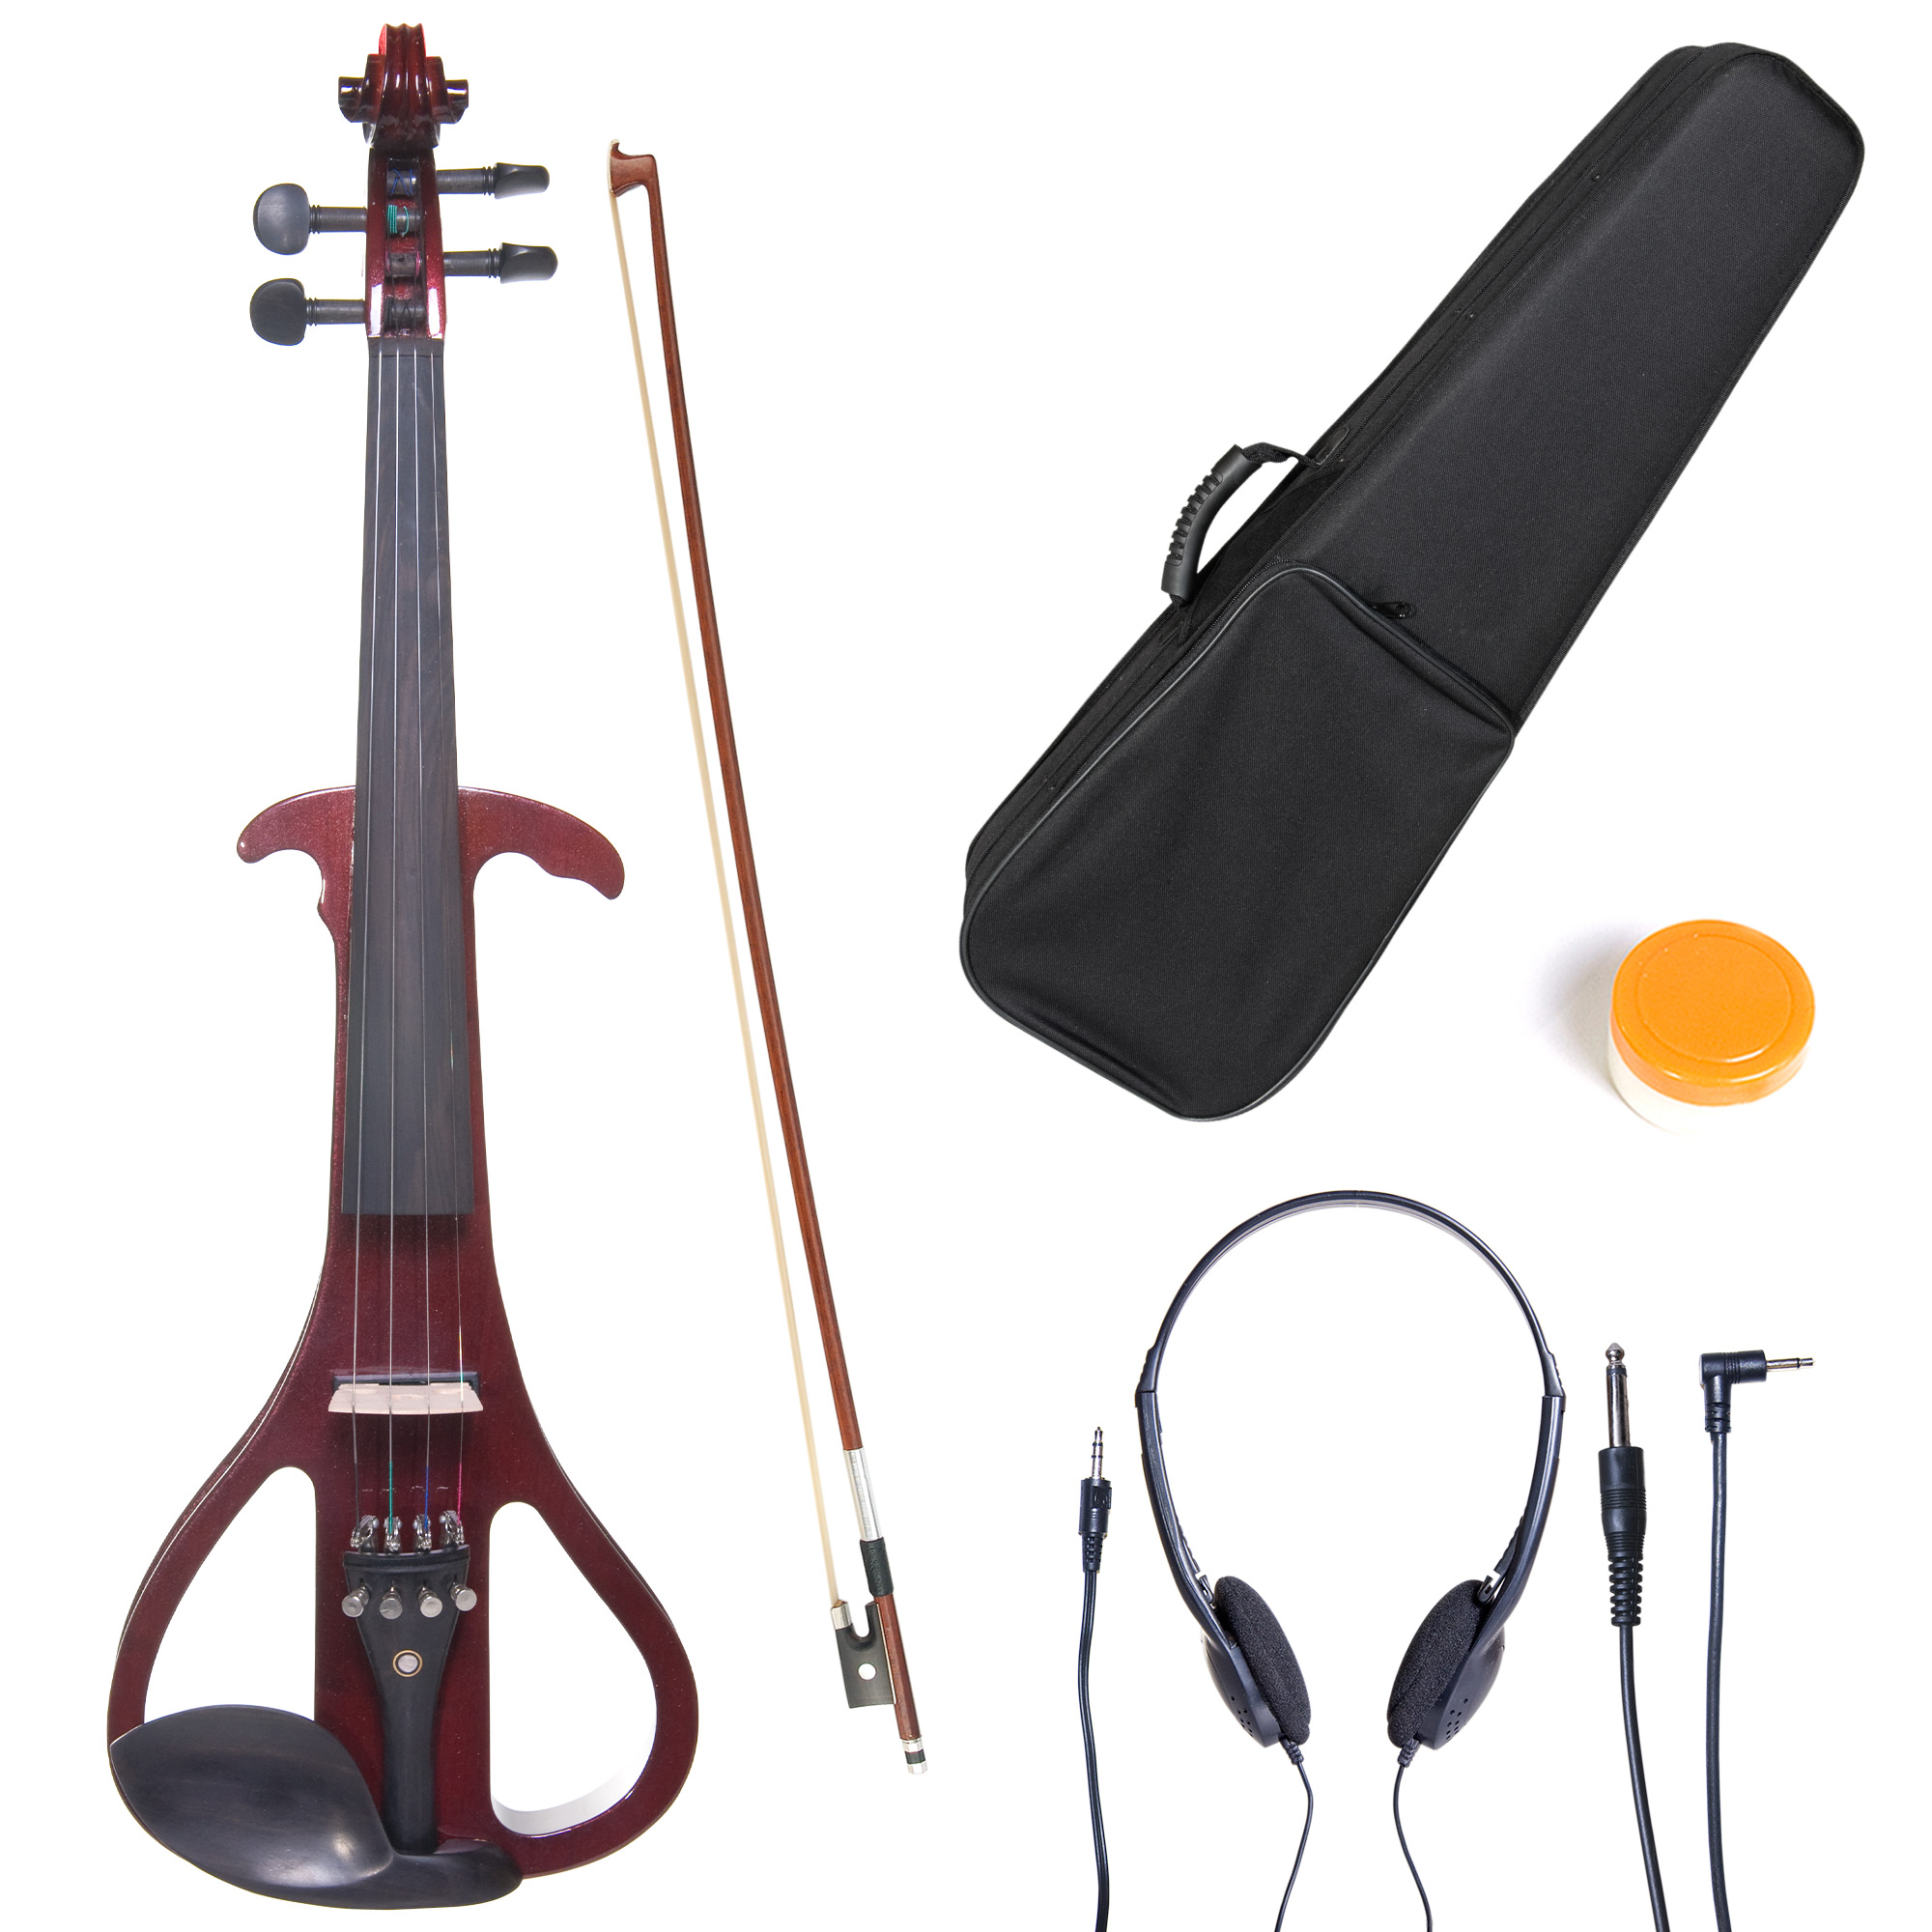 Cecilio 4/4 CEVN-4NA Solidwood Metallic Mahogany Electric/Silent Violin with Ebony Fittings-Full Size